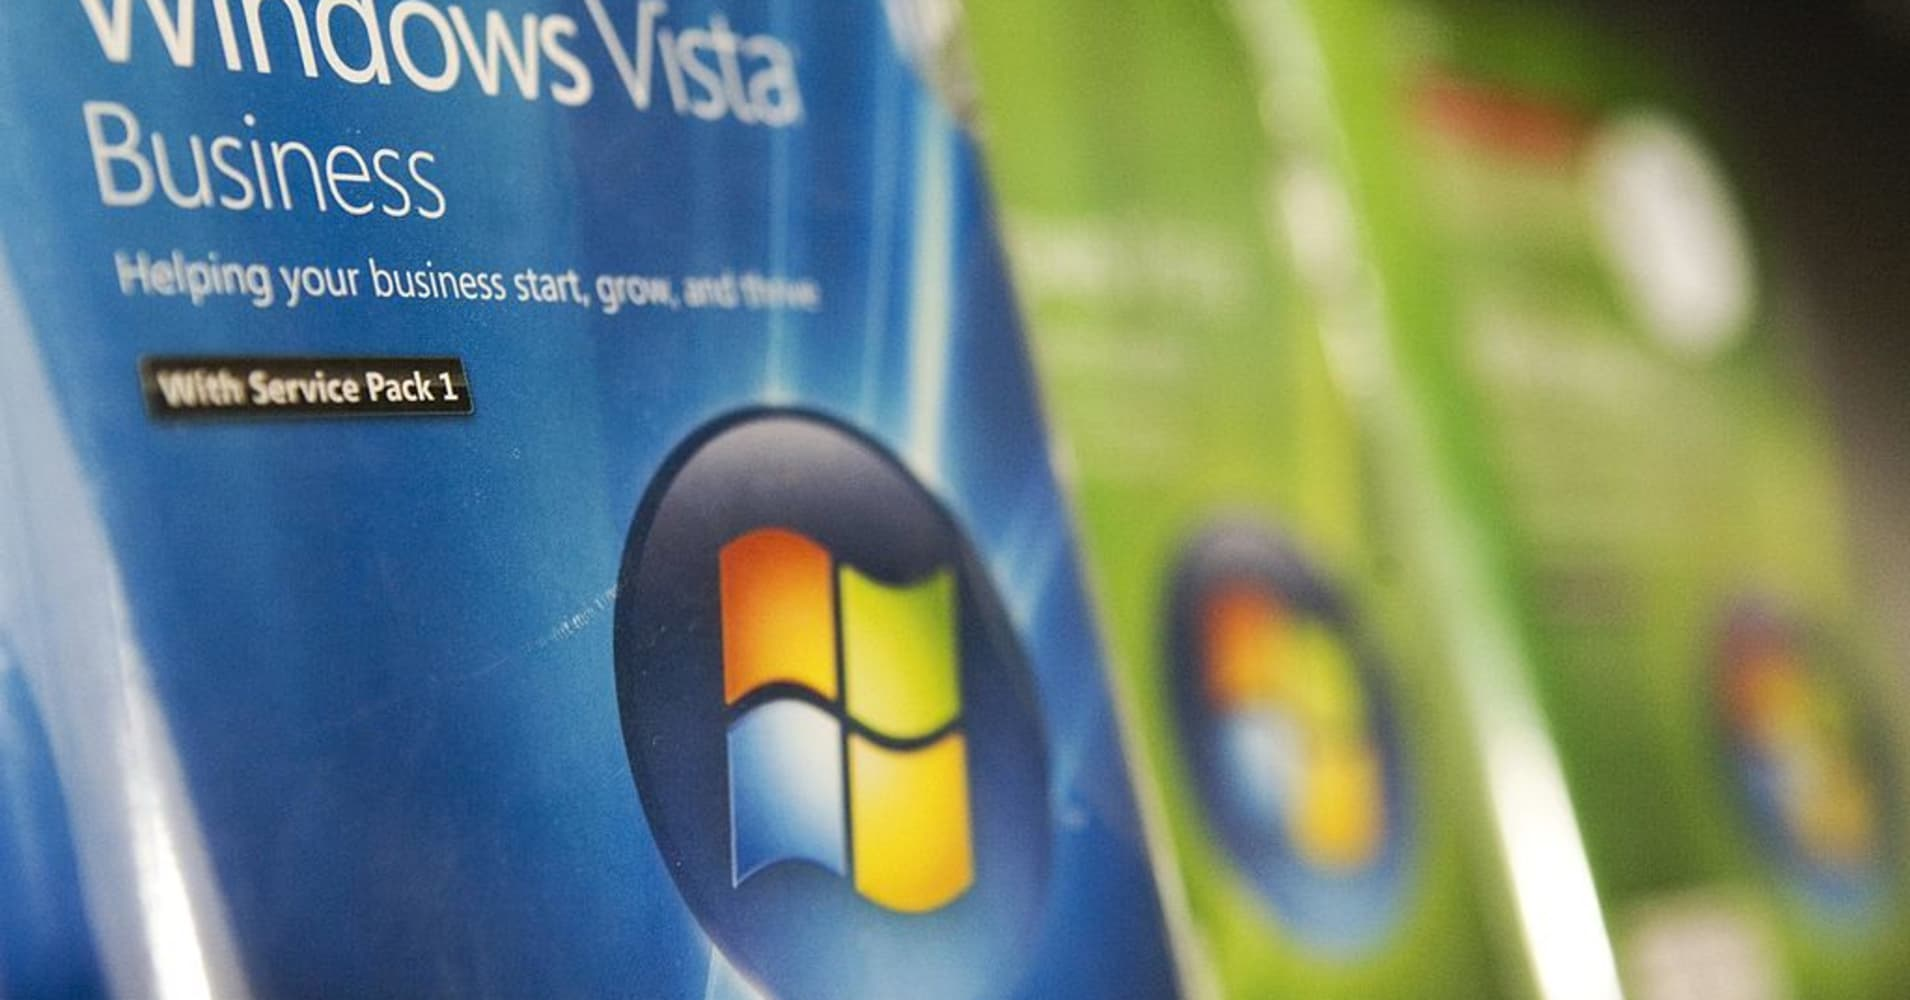 Microsoft is killing windows vista heres what you should do reheart Image collections